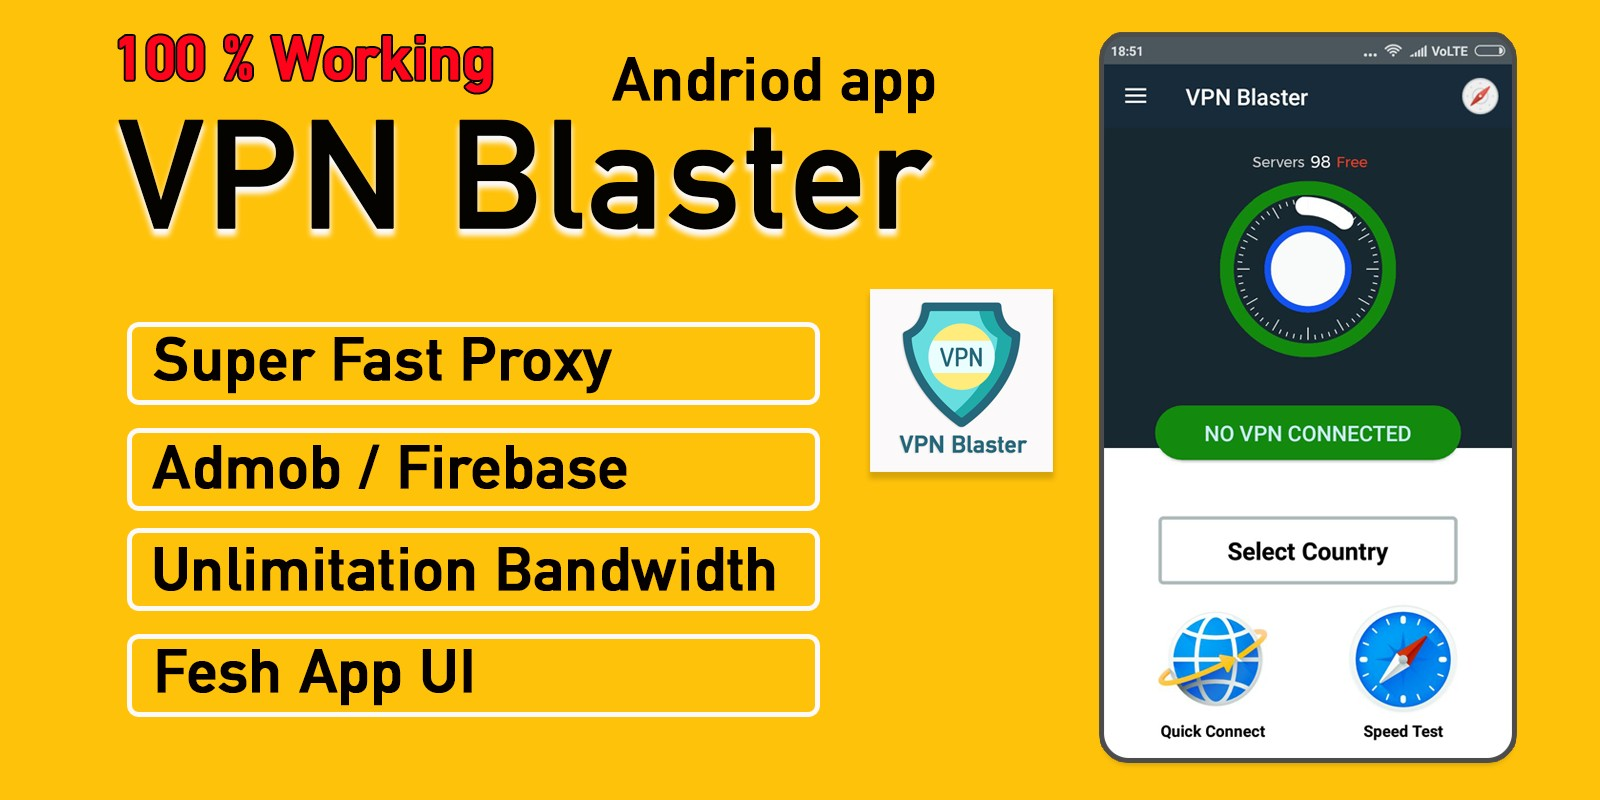 VPN Blaster - Android Source code